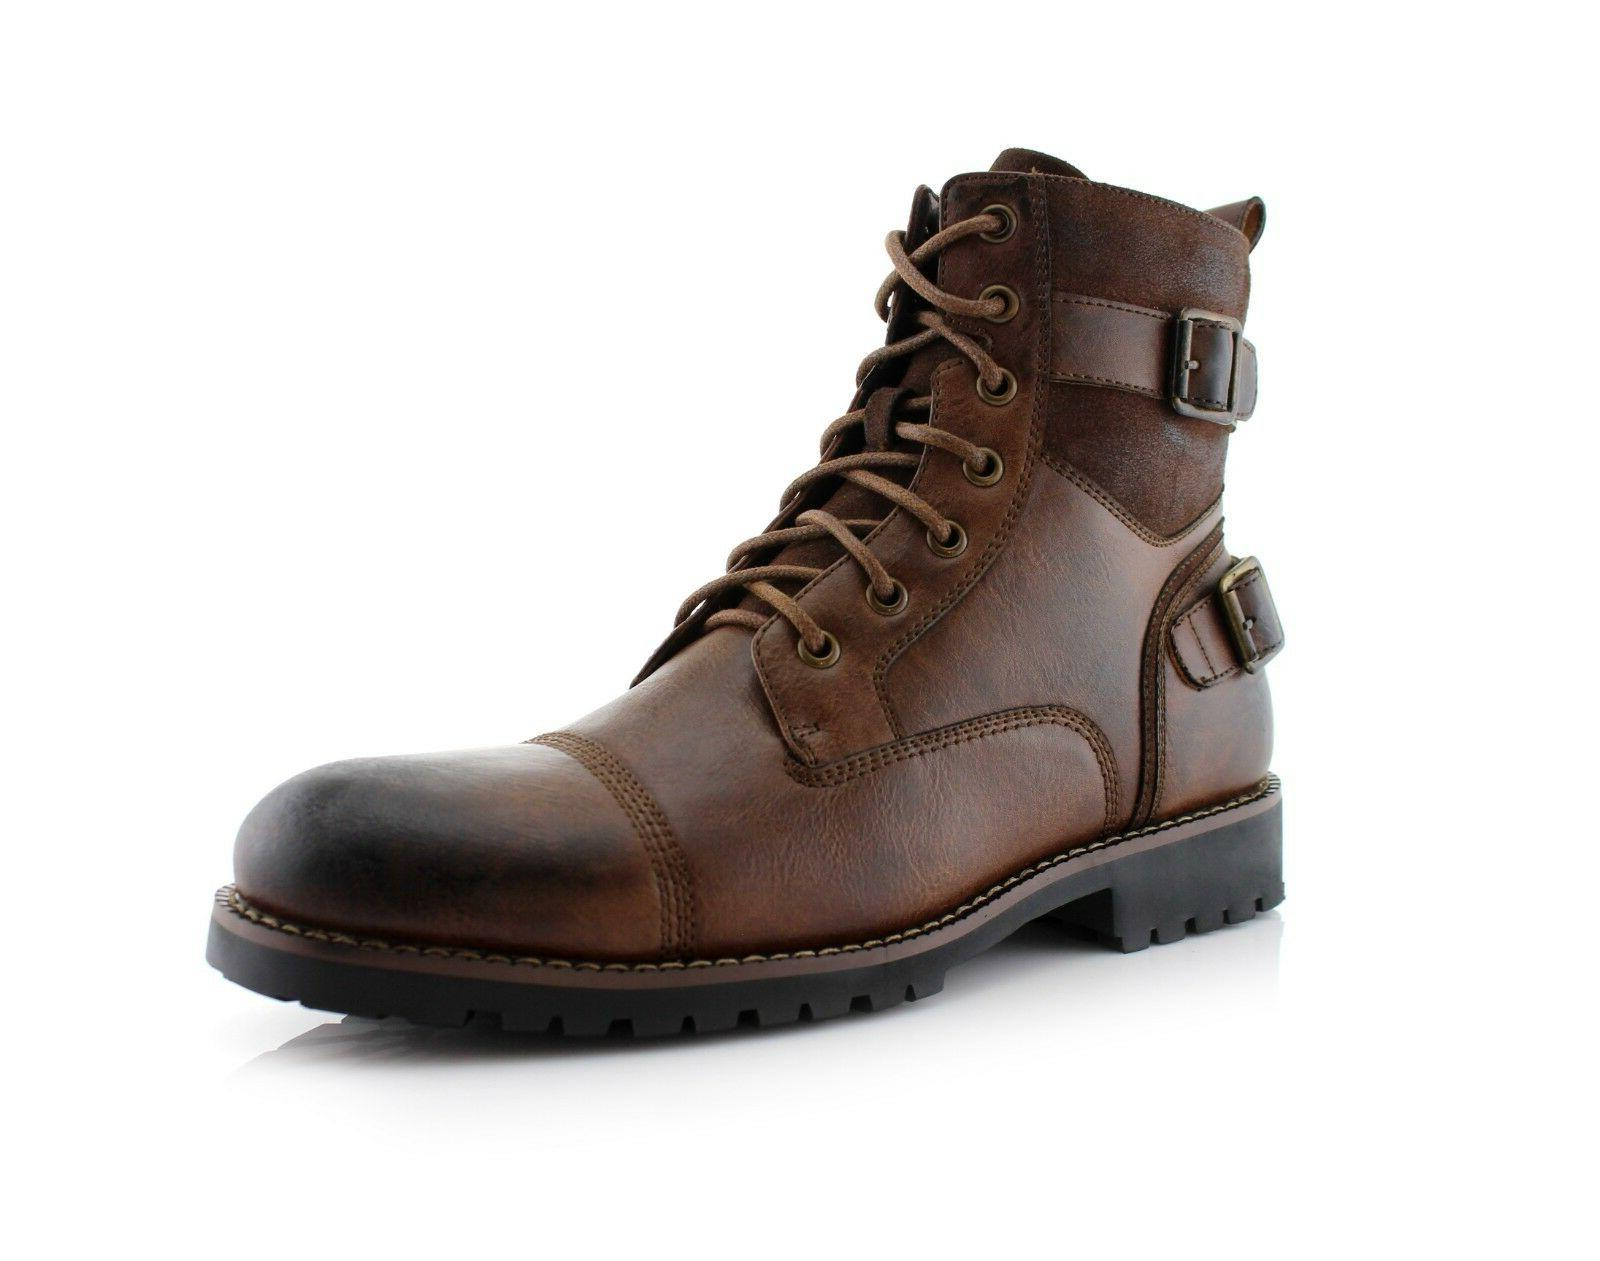 Men's Leather Motorcycle Casual Boots Riding Hiking Waterpro